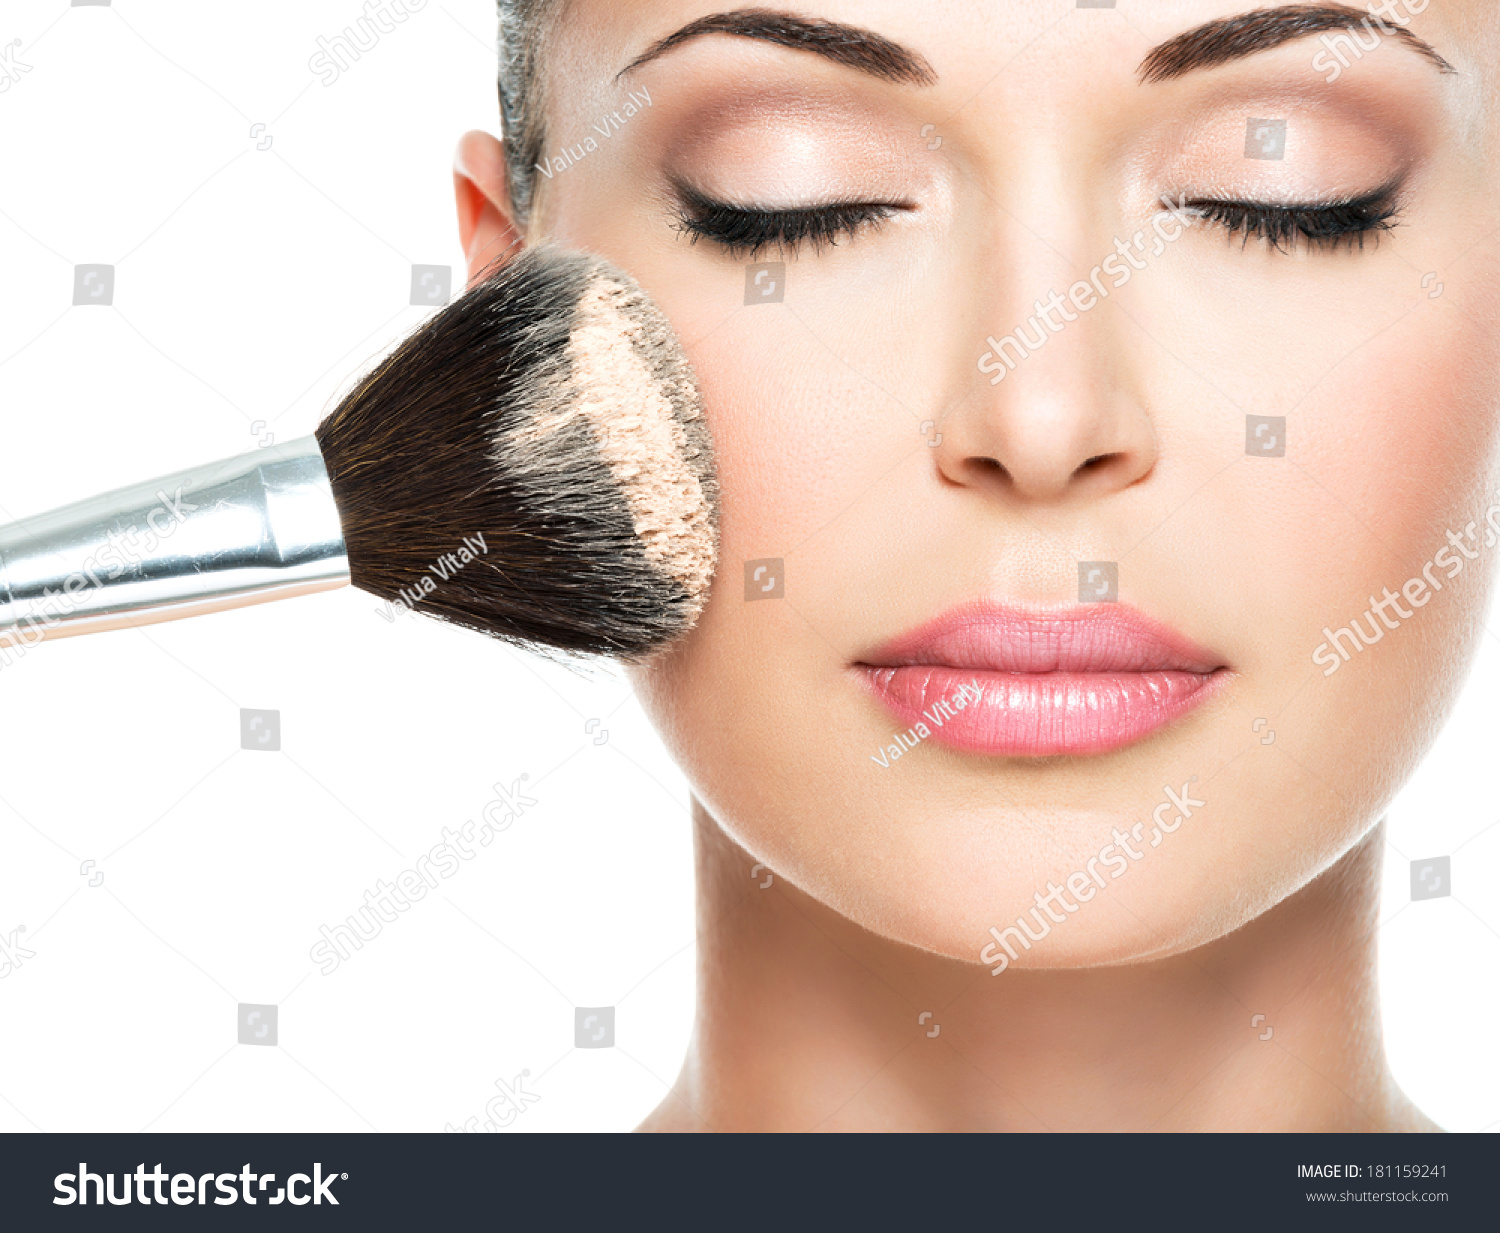 Closeup portrait of a woman  applying dry cosmetic tonal foundation  on the face using makeup brush.  #181159241